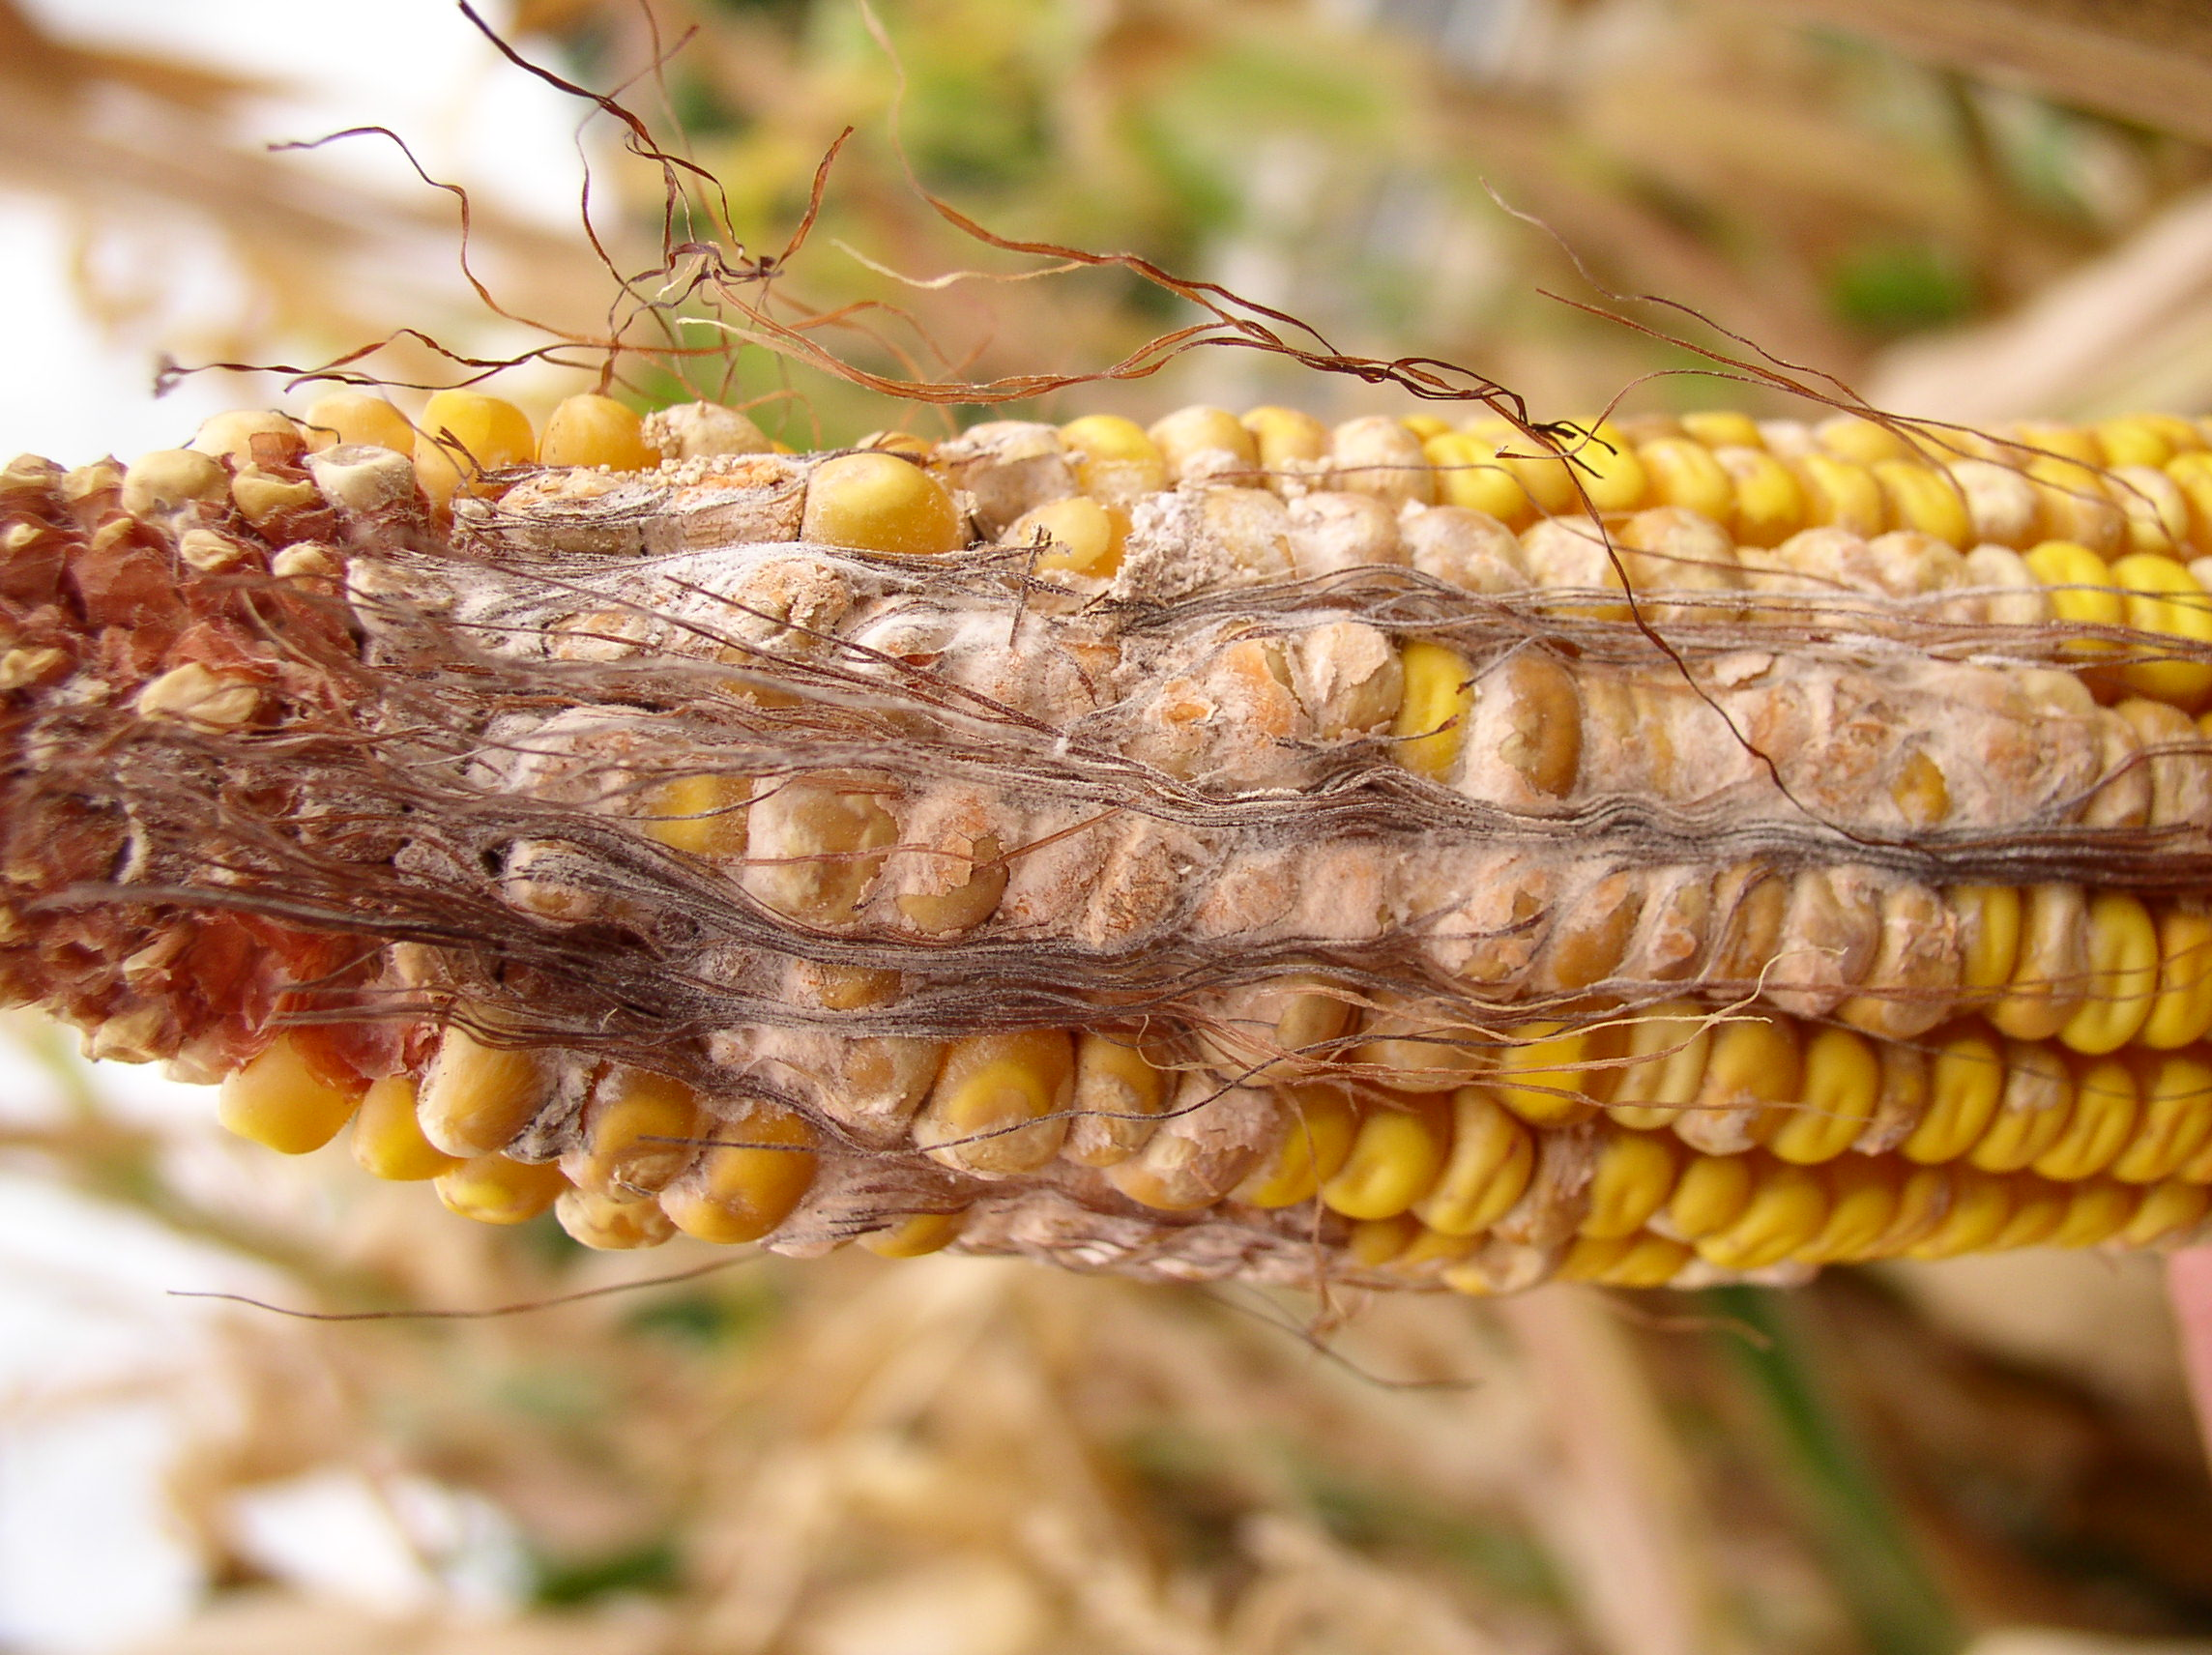 White to pink or salmon-colored, cottony mold indicative of Fusarium ear rot.